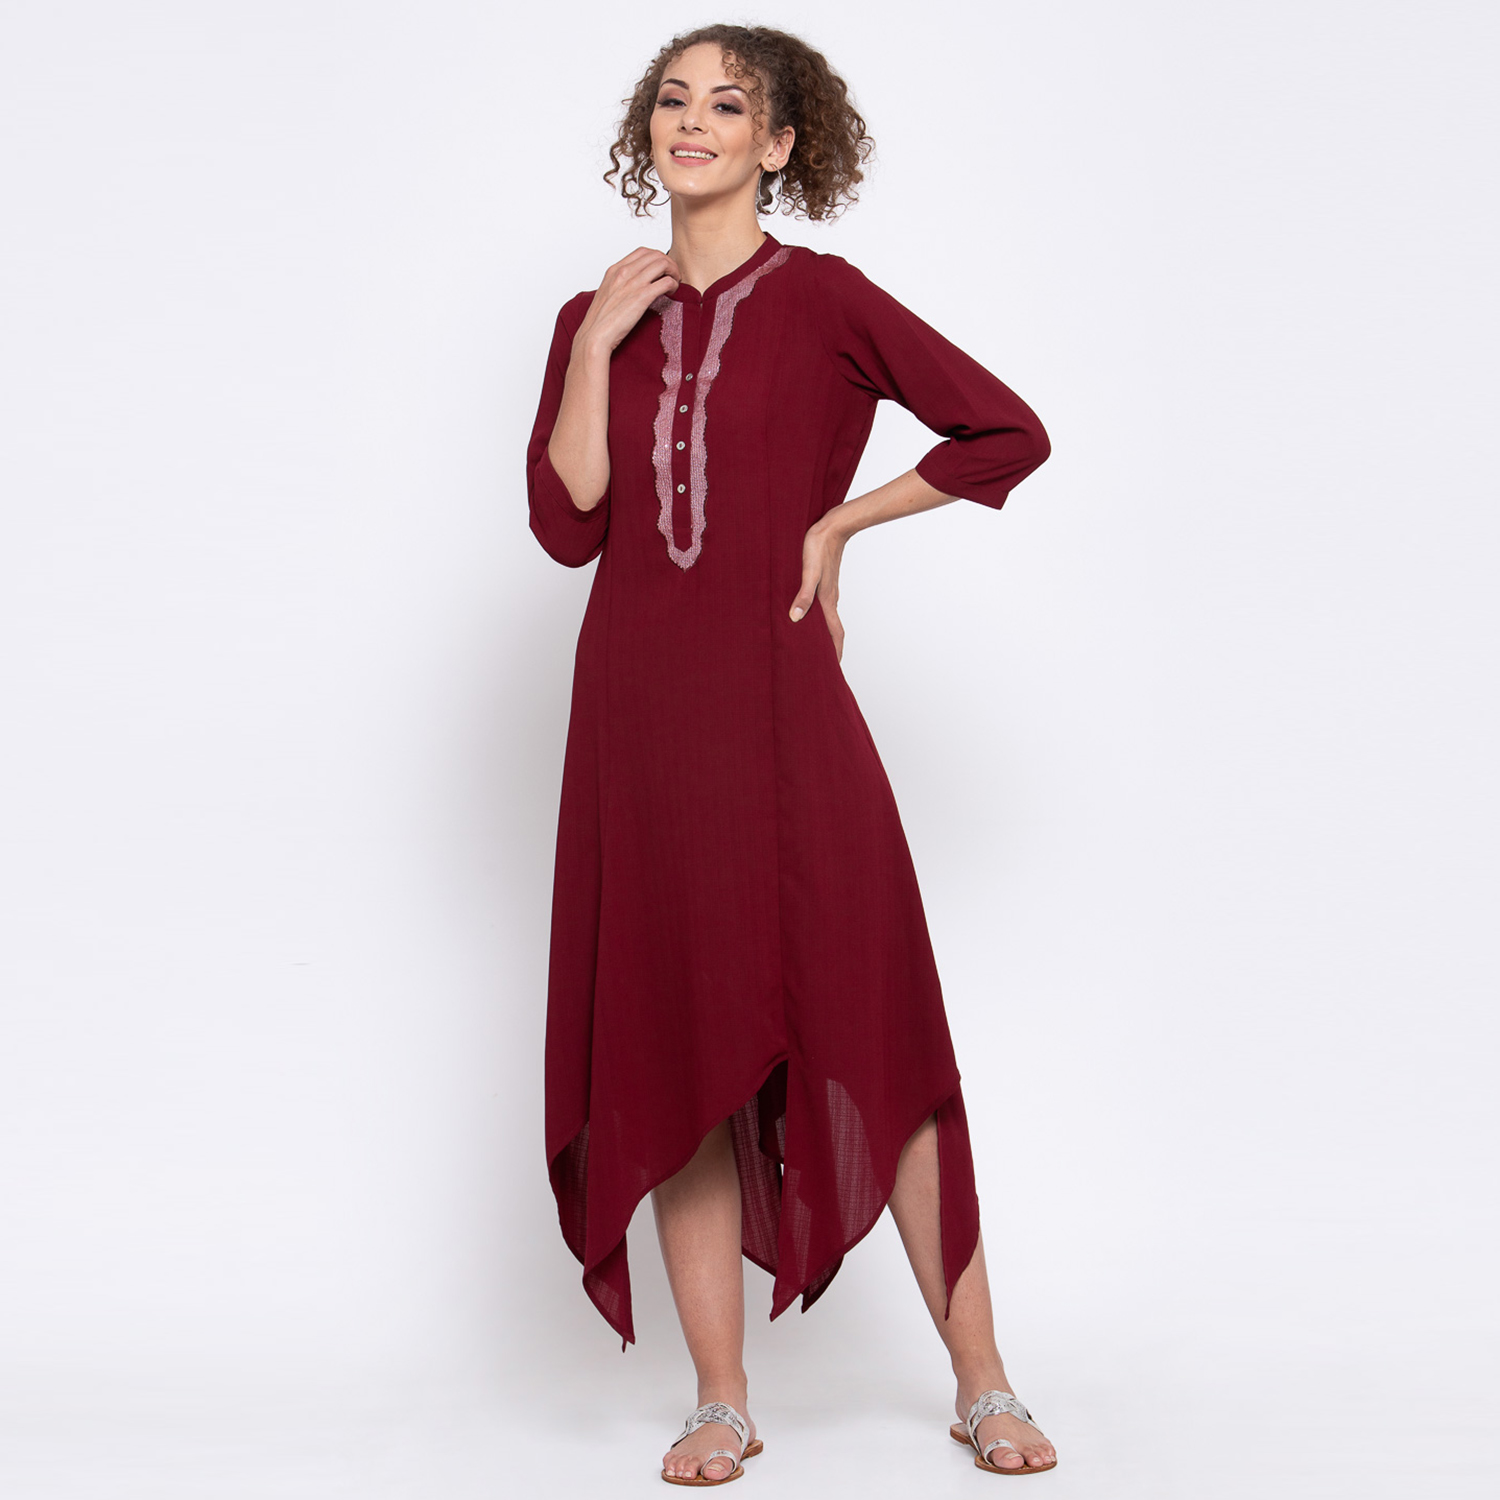 Maroon traingle dress with sequins embroidery